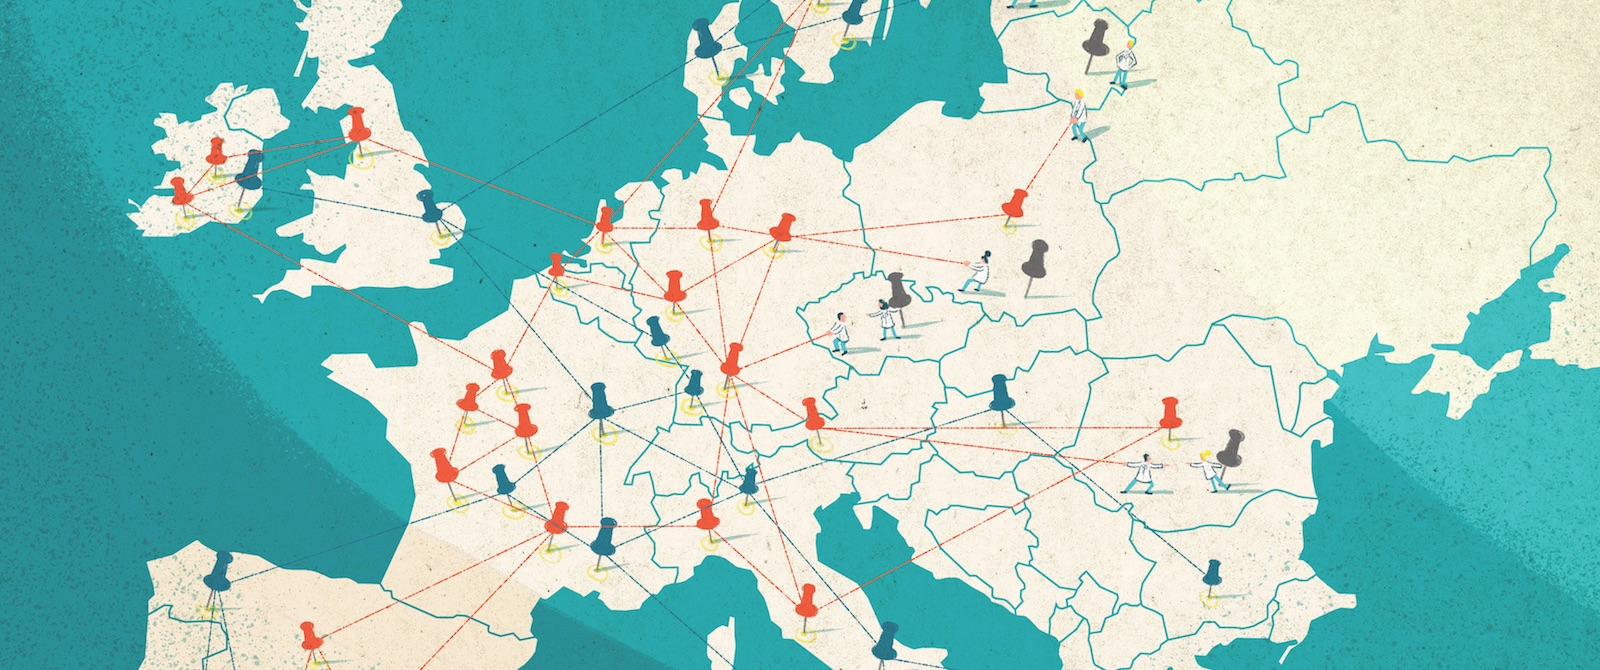 Rare cancer care: Are European Reference Networks delivering on the promise?